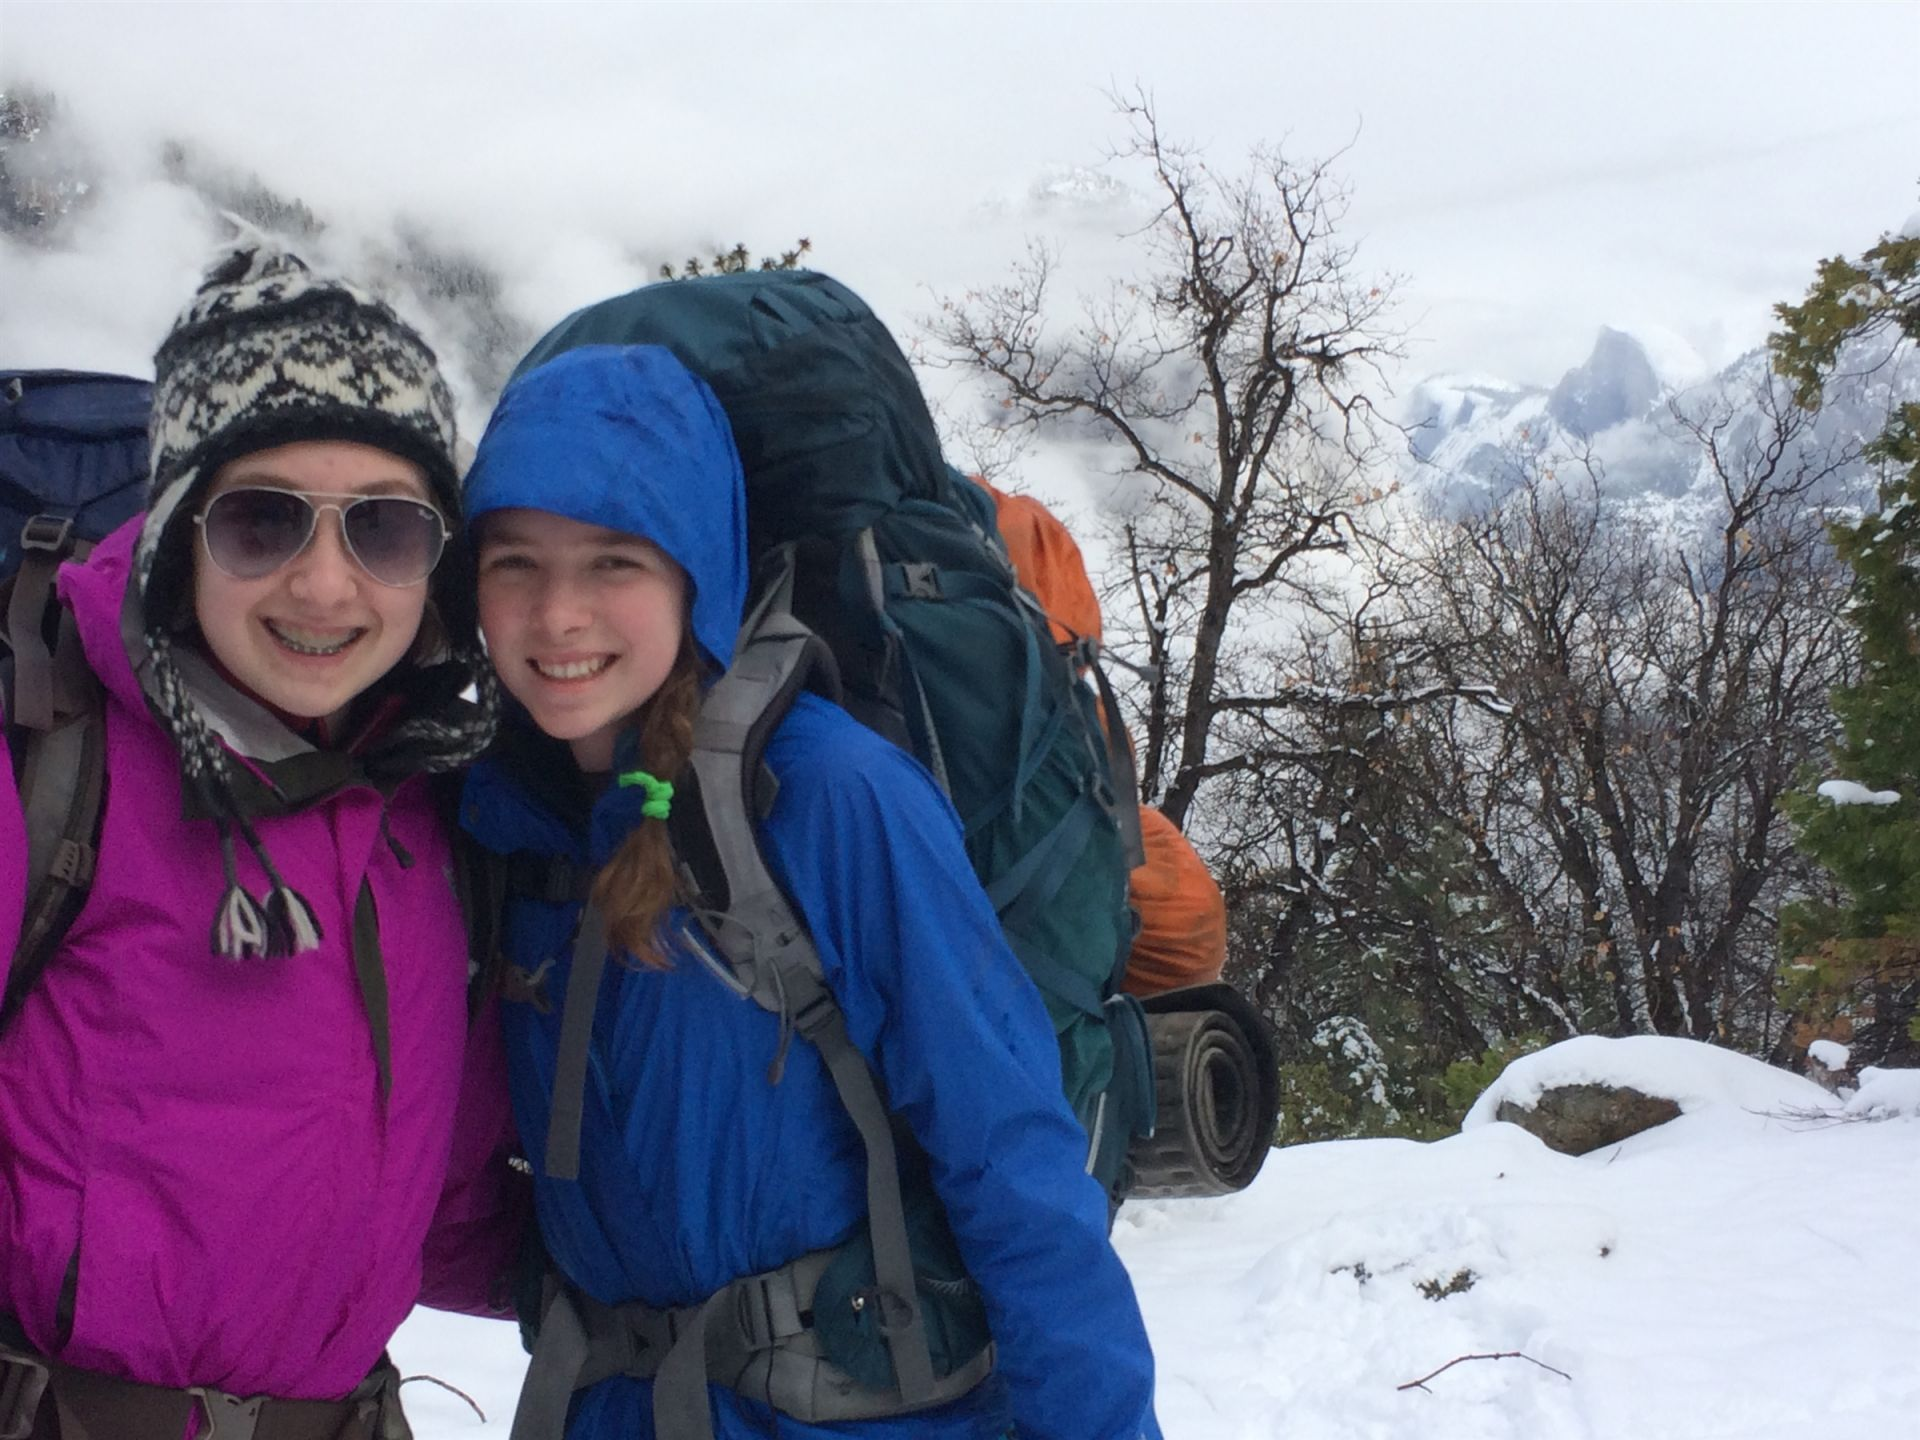 Grade 8: Five days, four nights – snow camping, cross-country skiing, hiking, Yosemite National Park